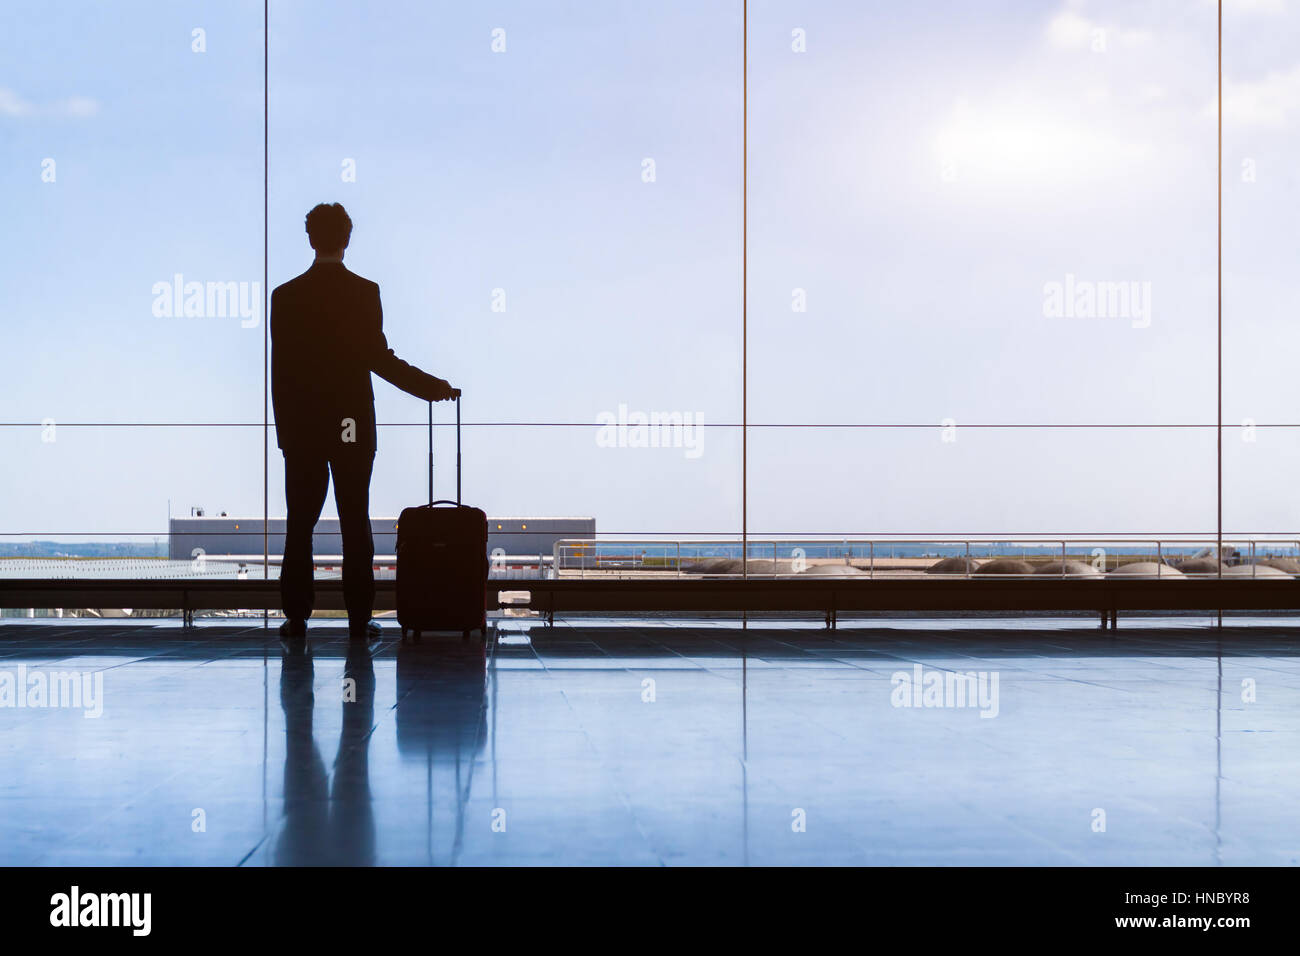 Traveler businessman in airport lounge waiting for the flight and standing with trolley luggage, business travel - Stock Image